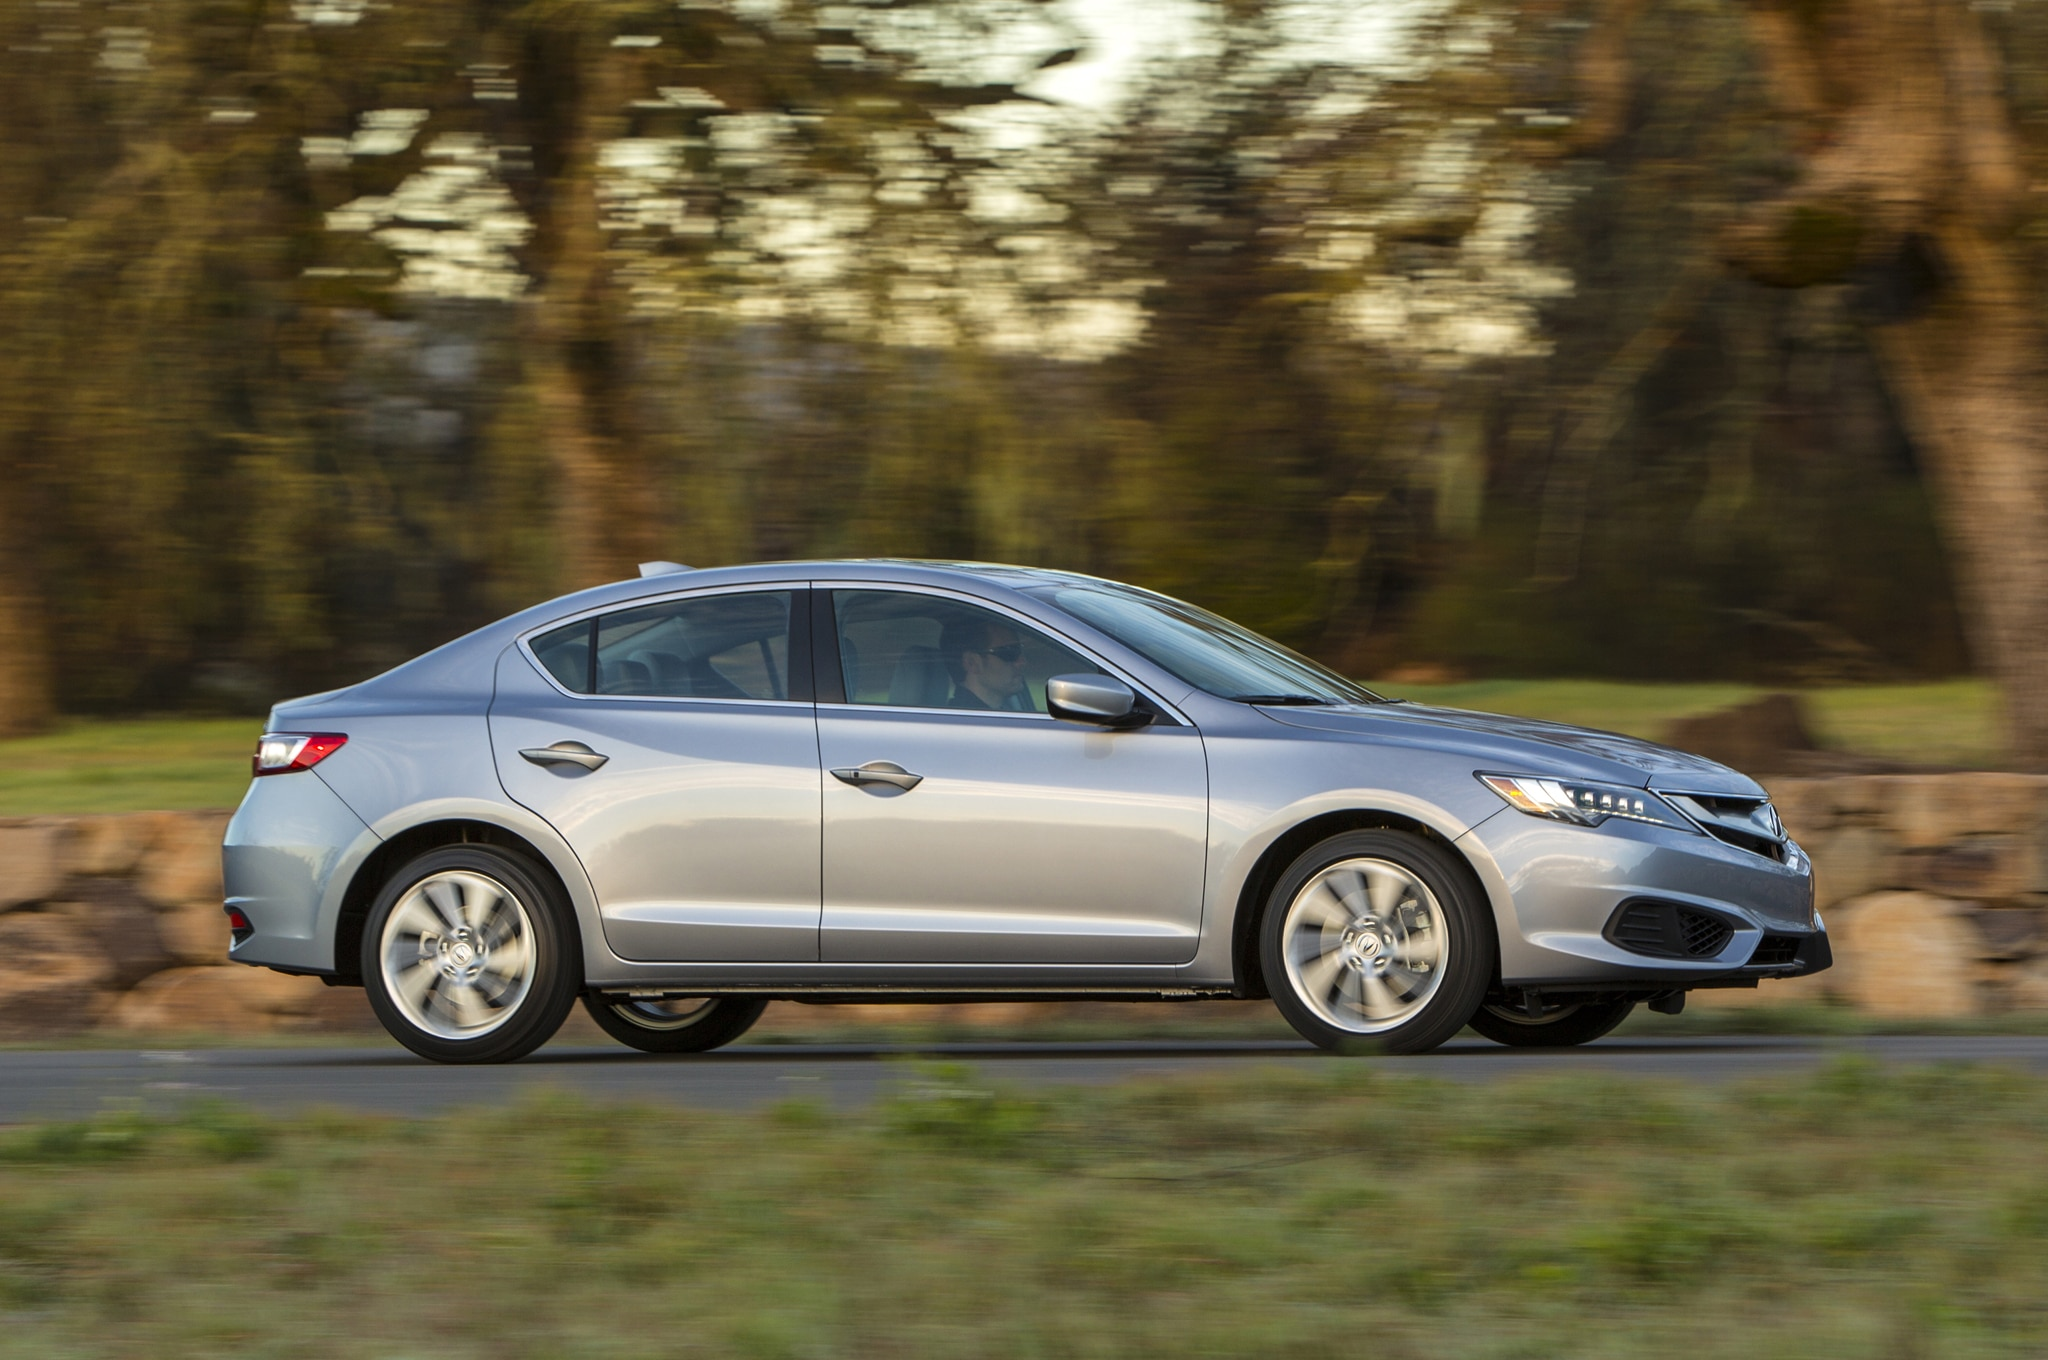 2016 Acura ILX Pricing And Fuel Economy Announced